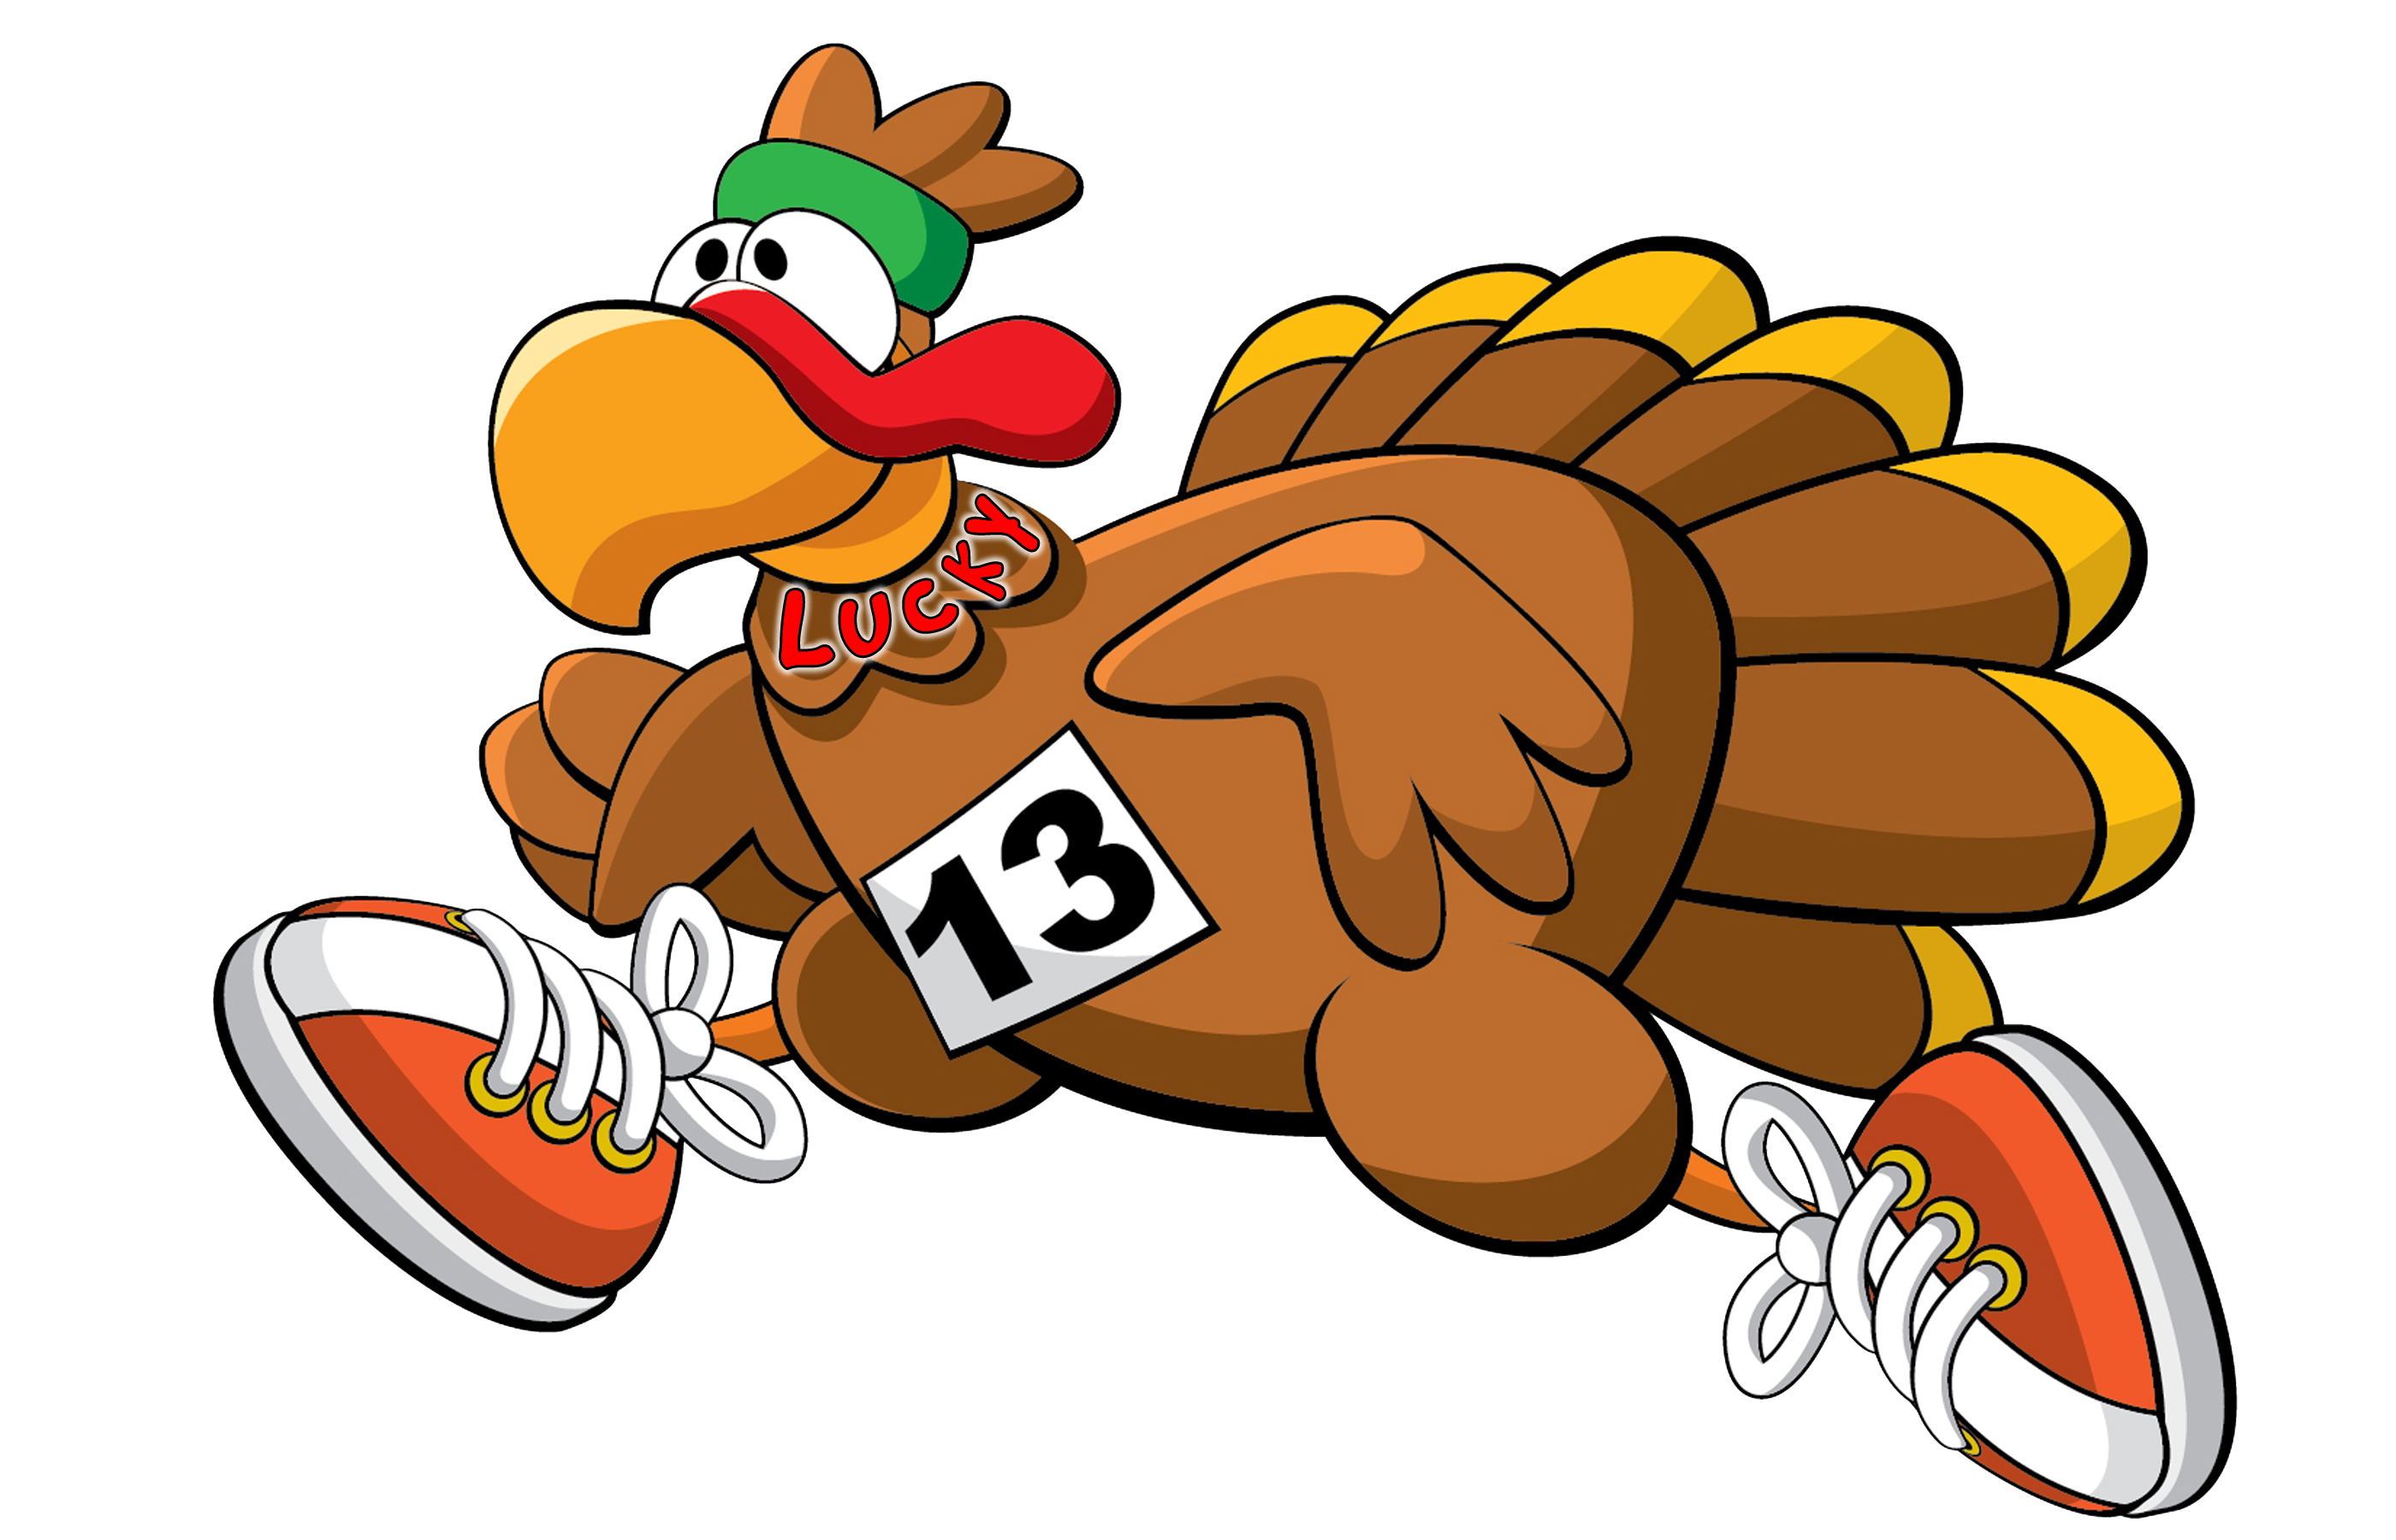 Female turkey running with jewelry clipart graphic freeuse download RUNNING WILD'S WILD TURKEY TROT 5K - Palm Springs, CA 2018 | ACTIVE graphic freeuse download